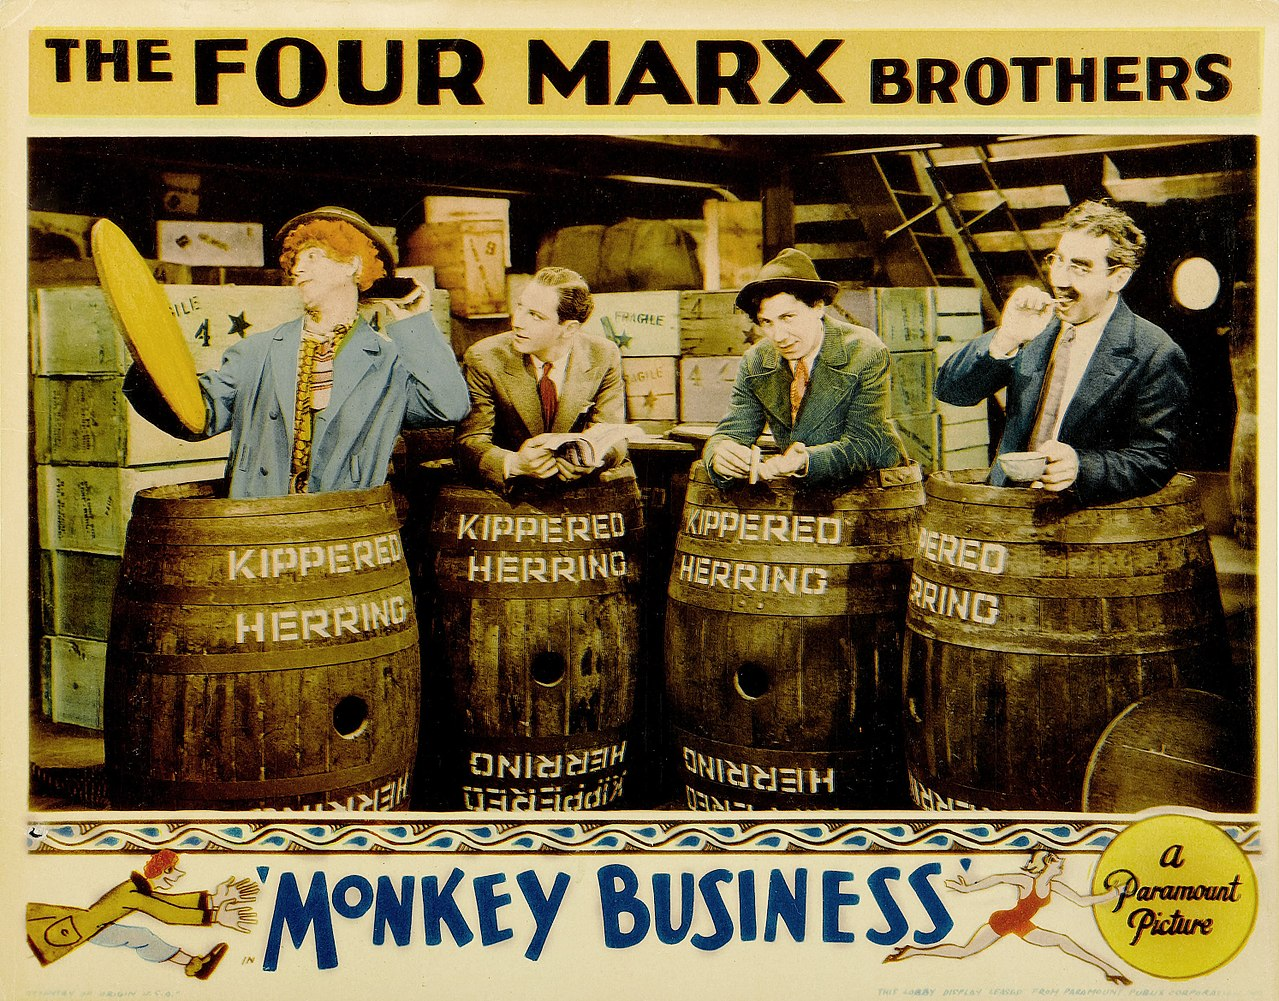 Marx Brothers facts